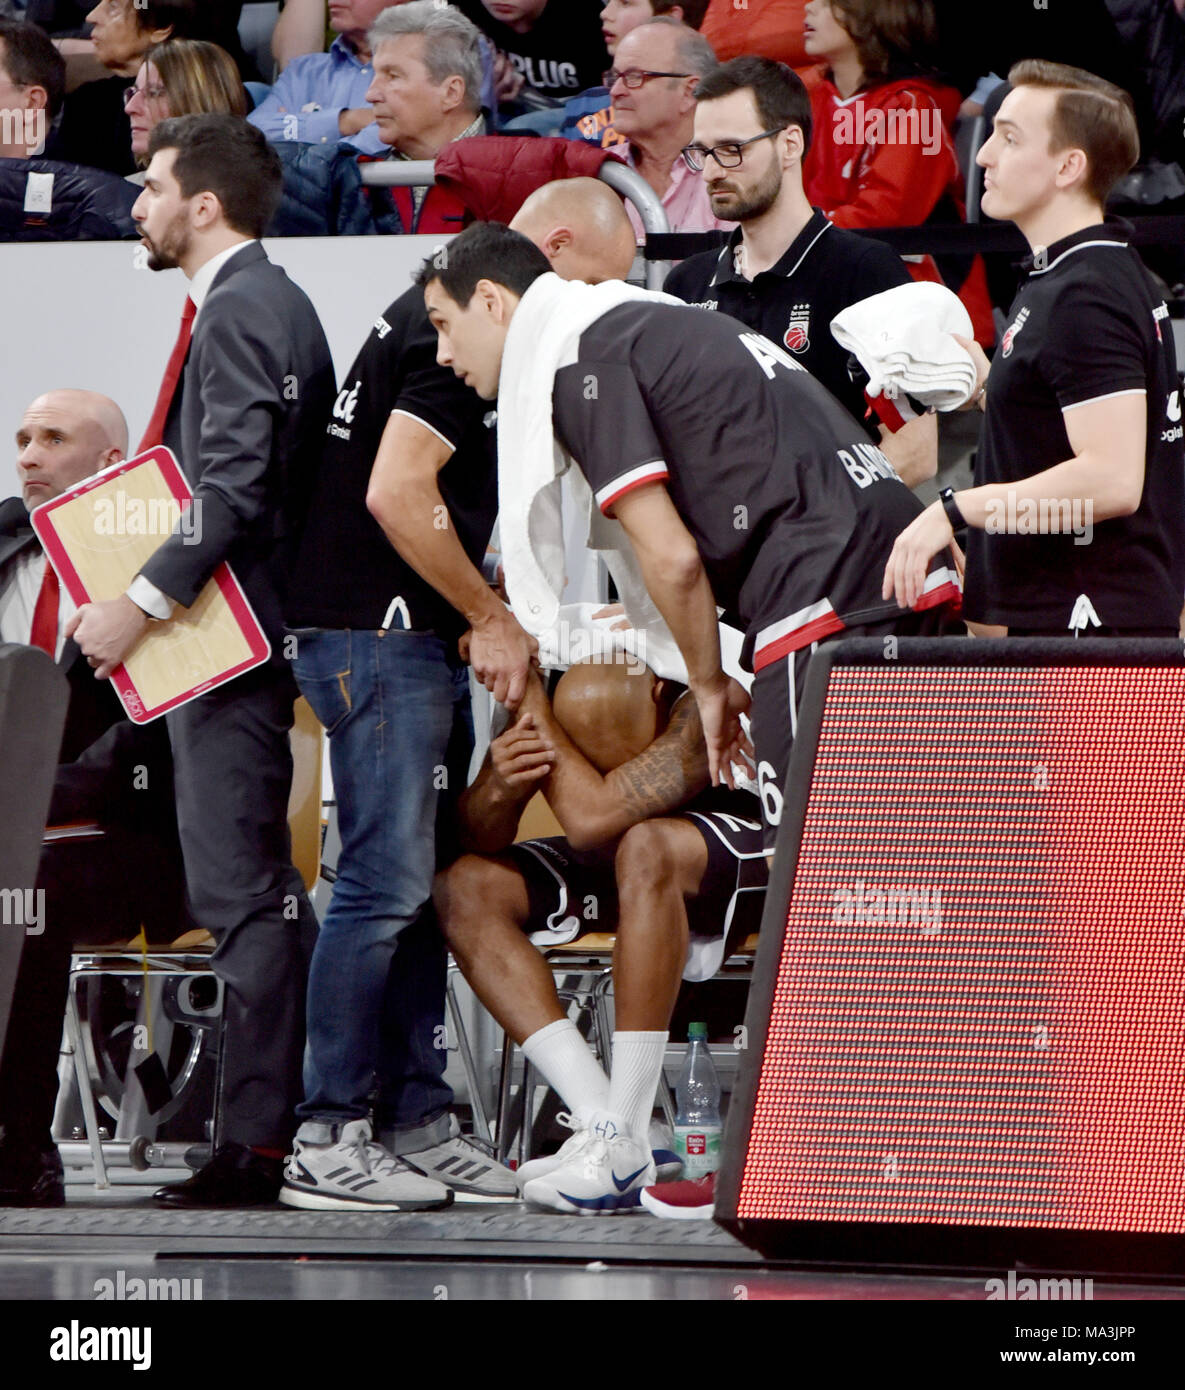 Germany , Bamberg, Brose Arena - 29 March 2018 - Basketball, Euro League - Brose Bamberg vs. Pallacanestro Olimpia Milano  Image: Ricky Hickman (Brose Bamberg, #2) recieving treatment from the medical staff after taking a hard hit to the head while fighting for a loose ball.   Credit: Ryan Evans/Alamy Live News - Stock Image